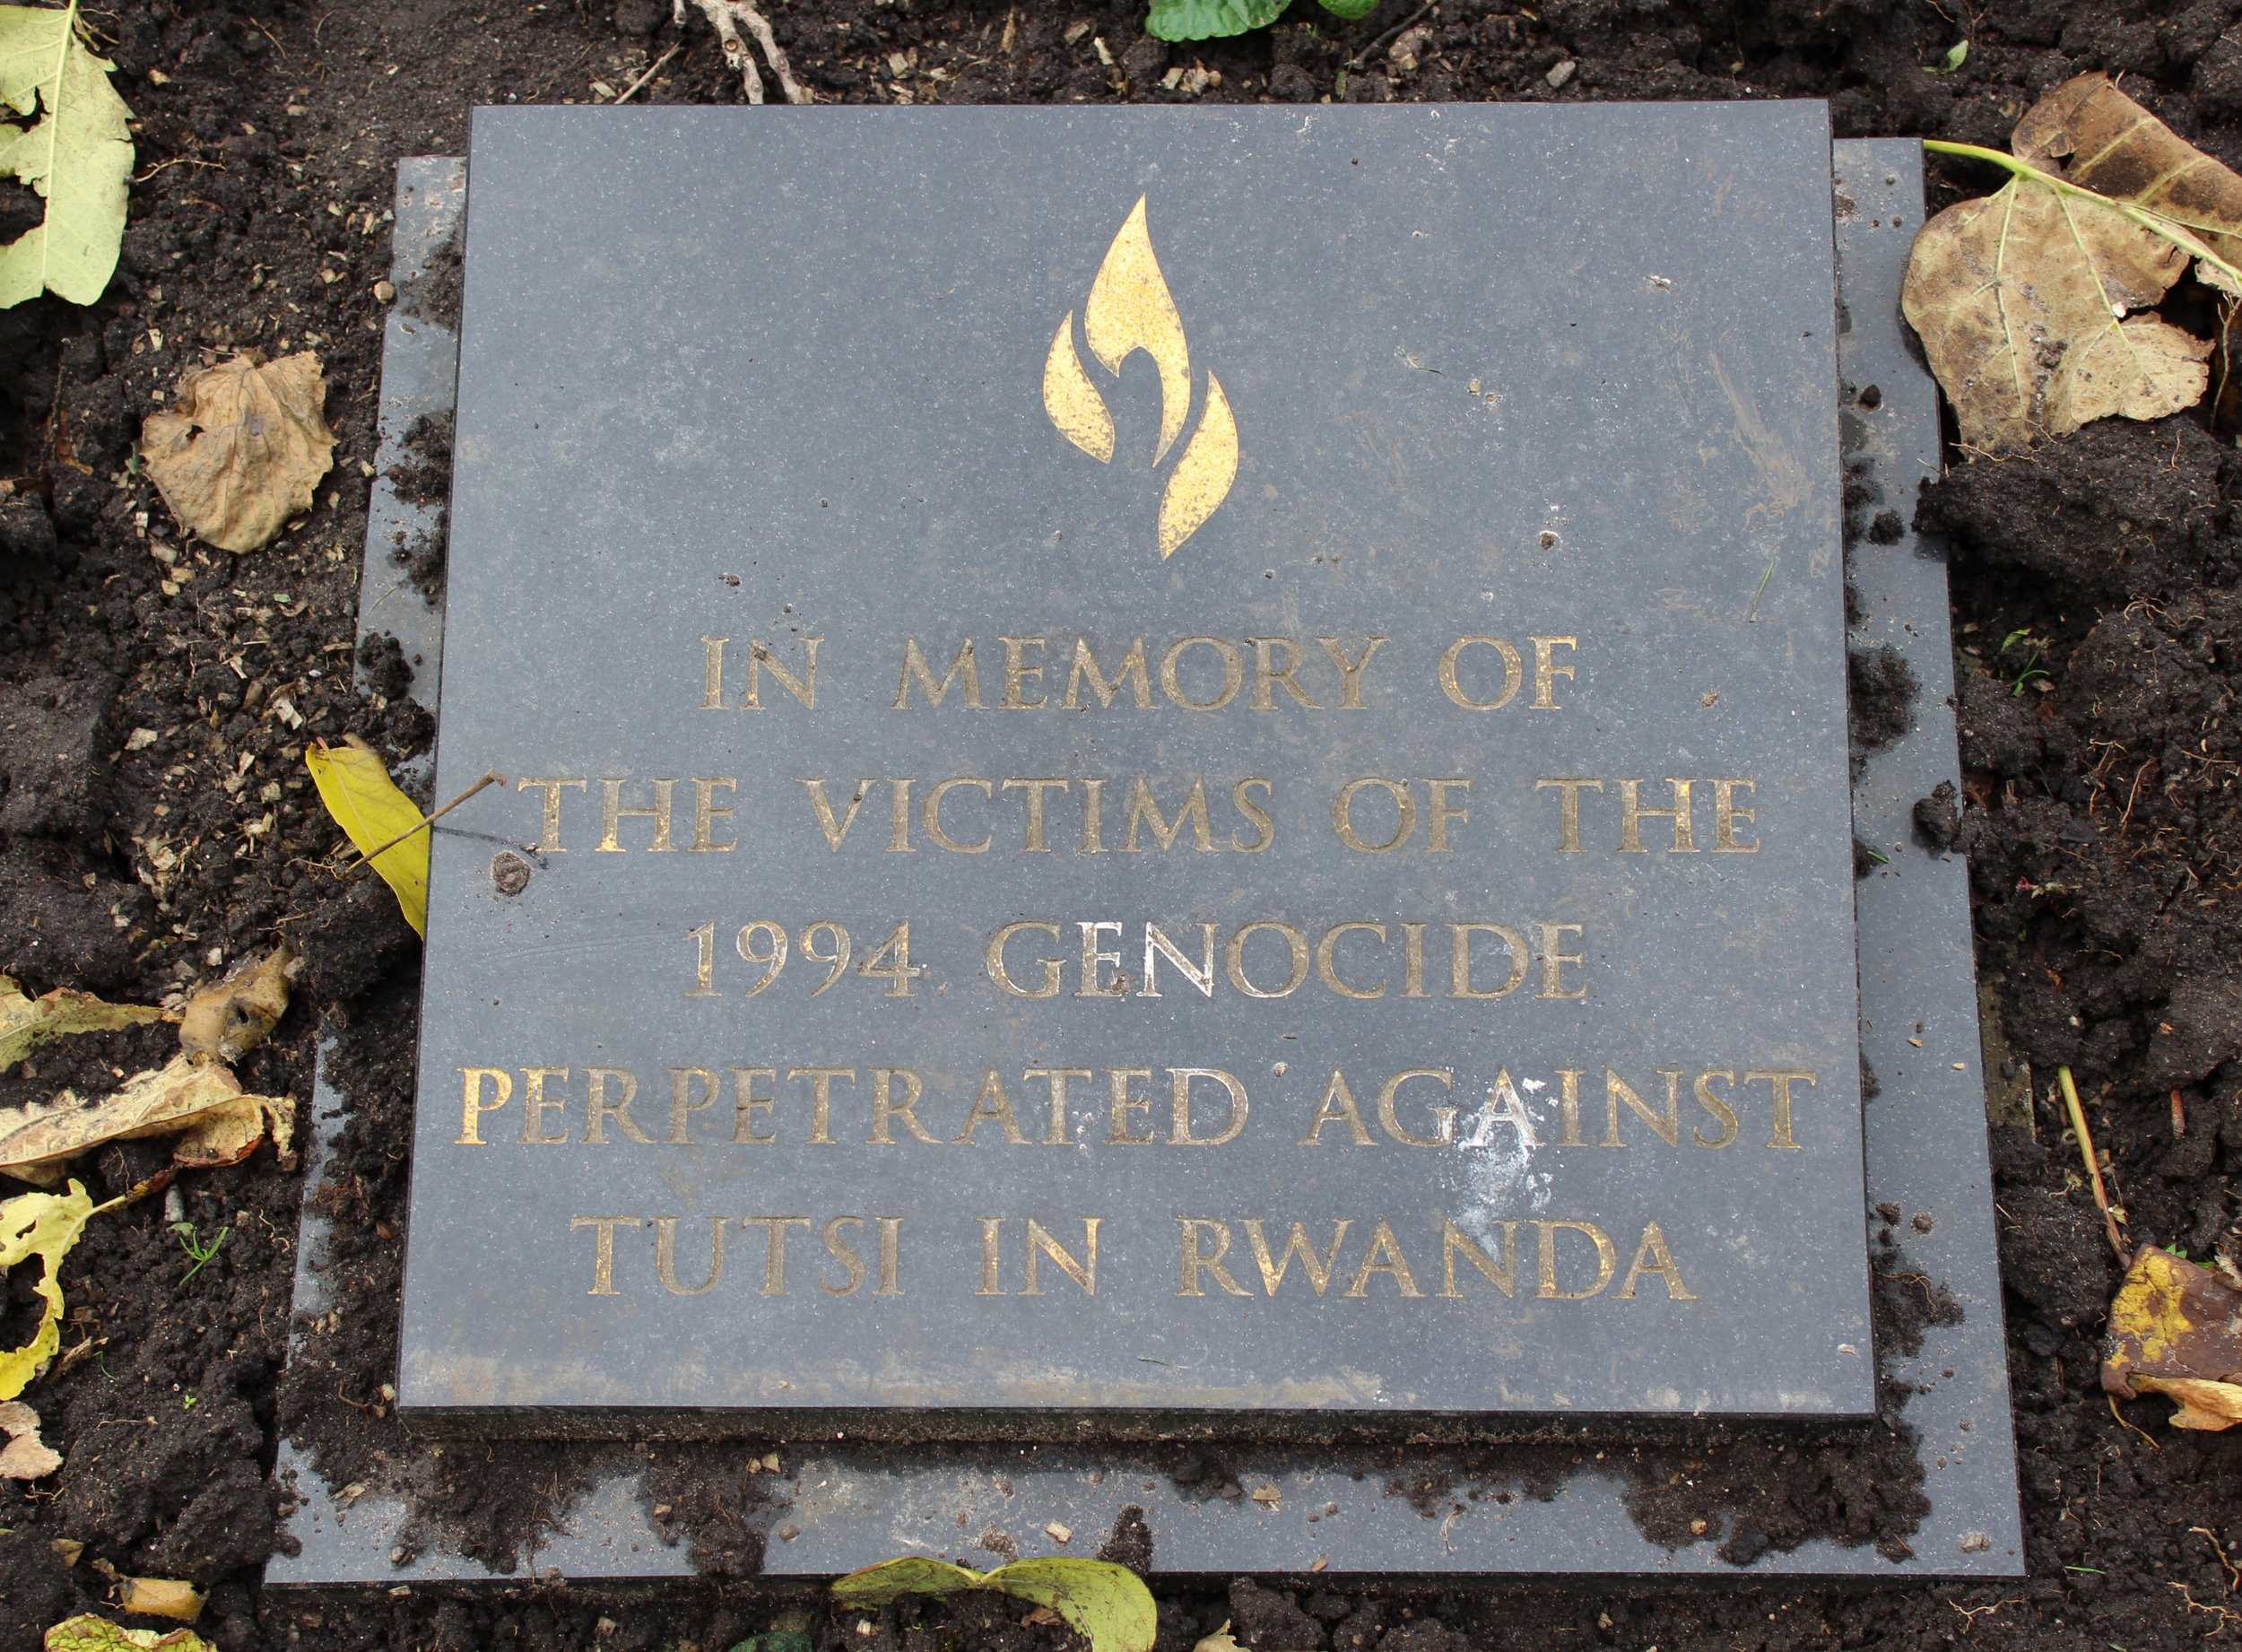 A memorial in Liverpool honors the Rwandans killed in the 1994 genocide. (Wikimedia Commons)